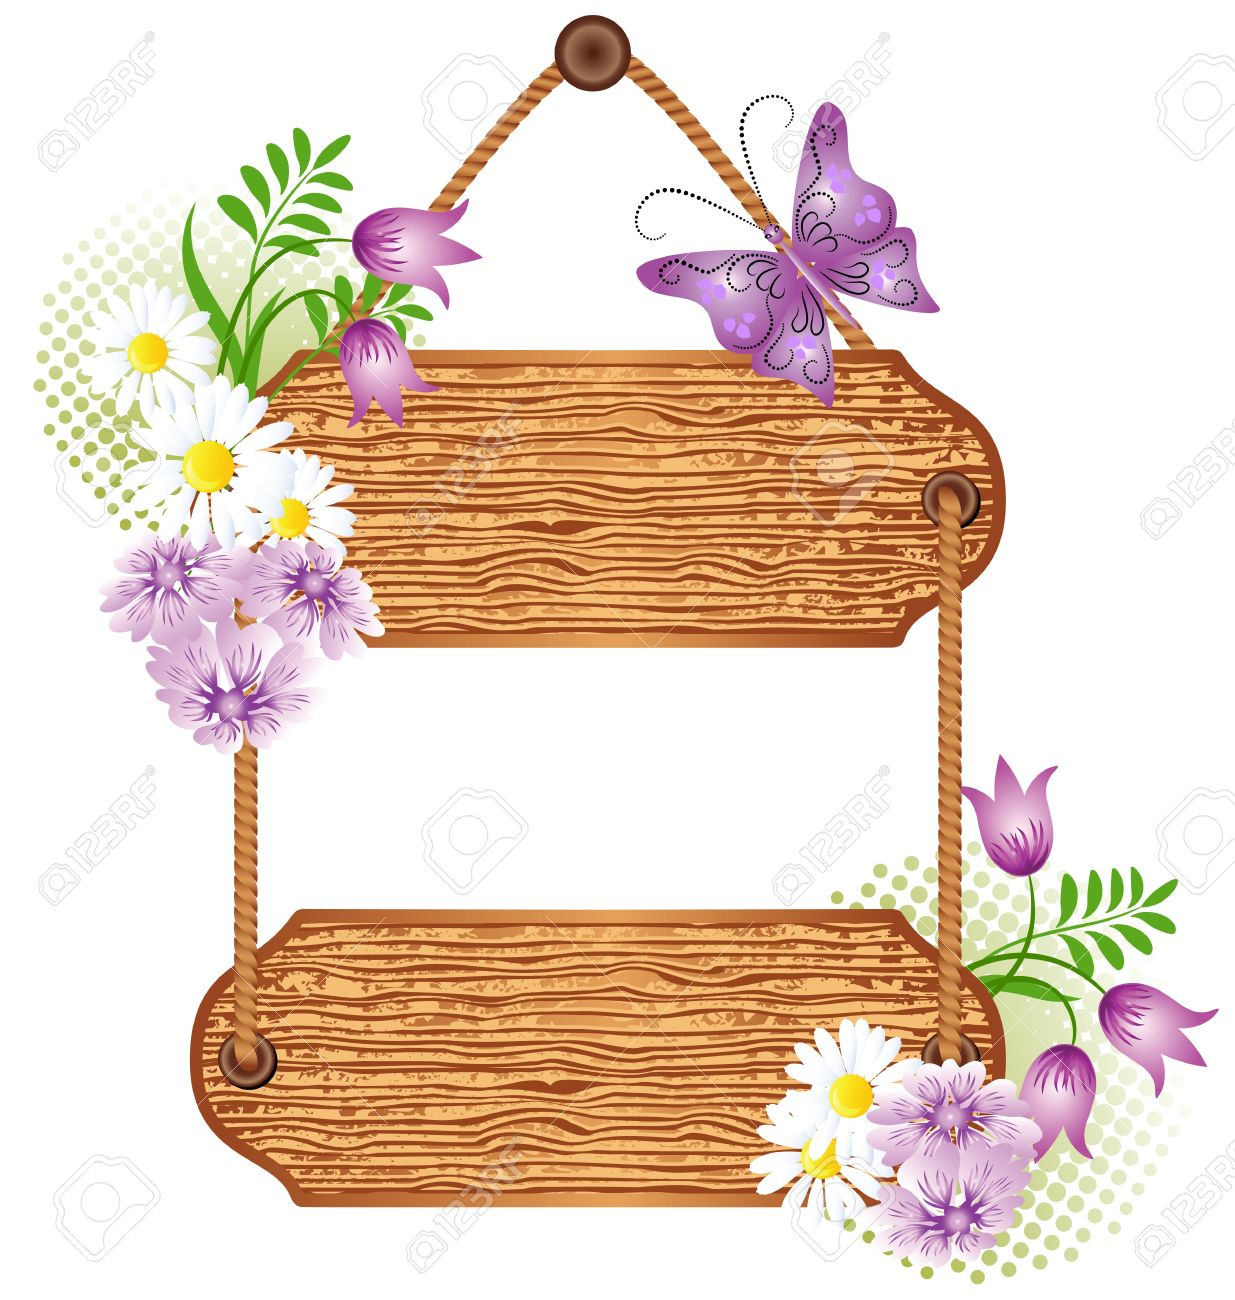 Wooden signboard with flowers for text Stock Vector - 10194558